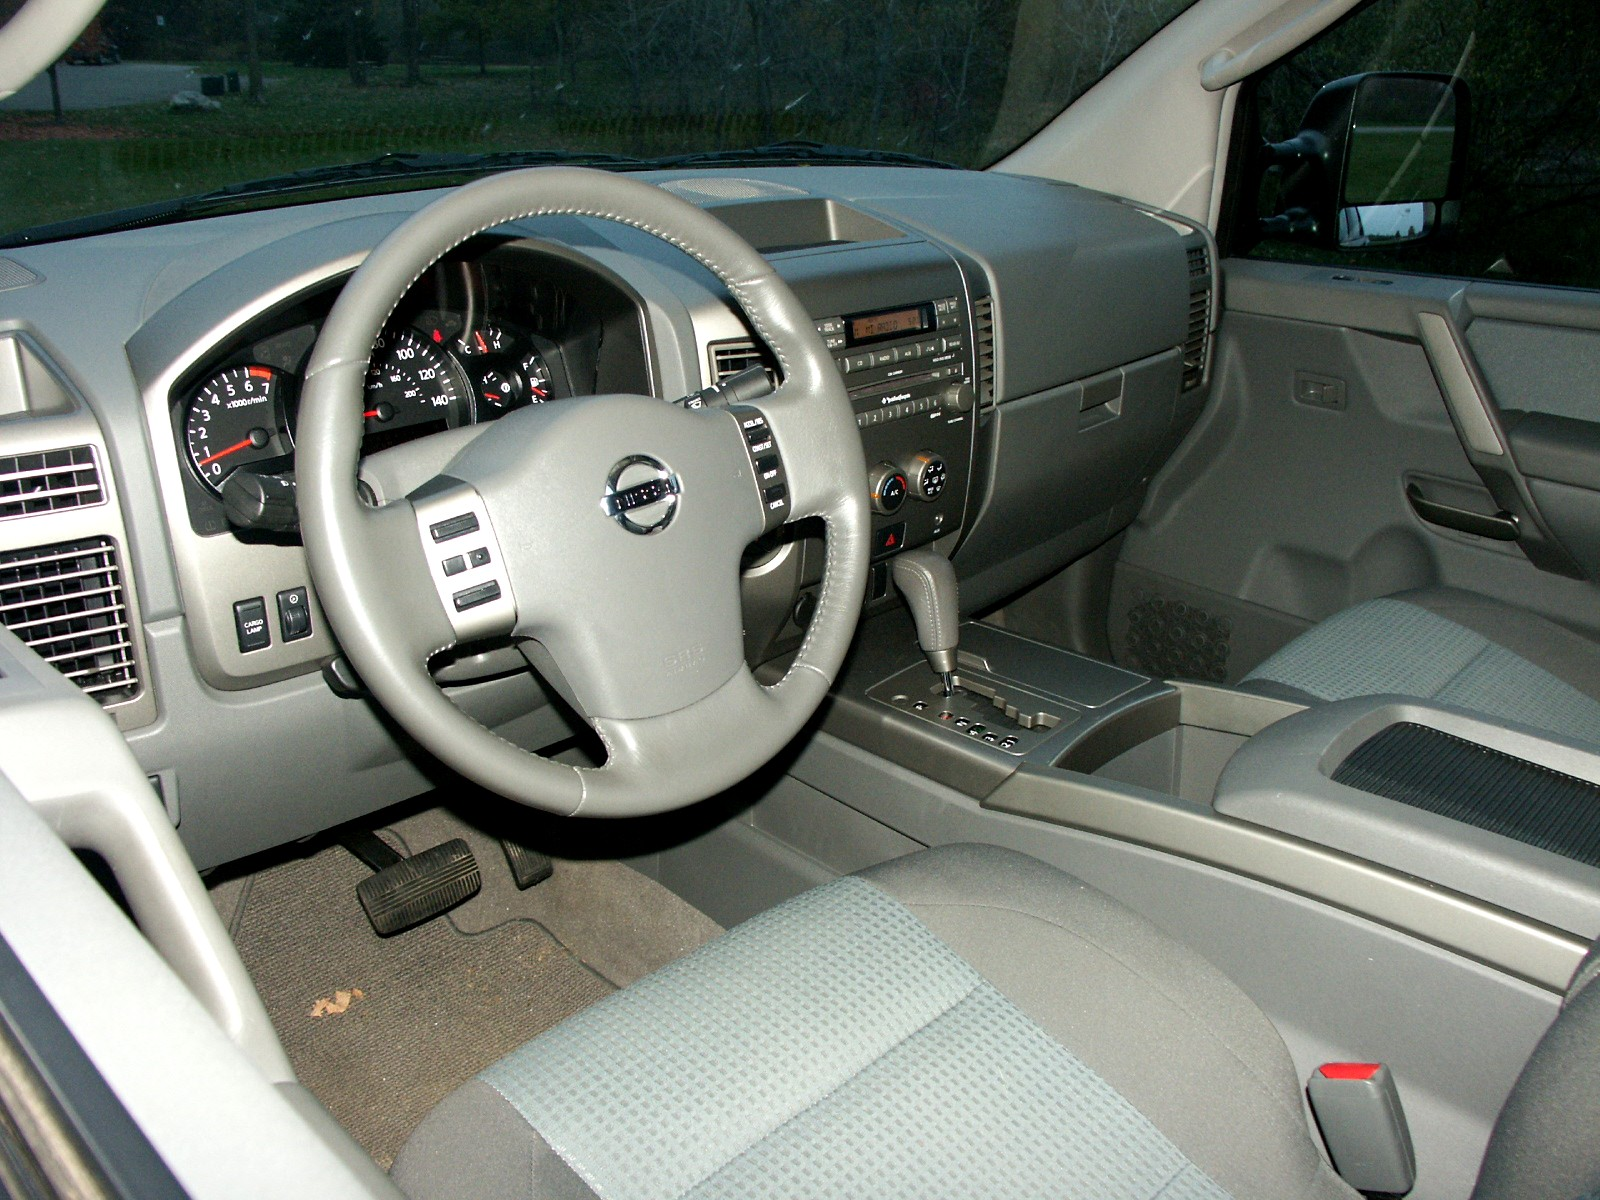 Nissan titan 4x4 se review photo select to view enlarged photo vanachro Images